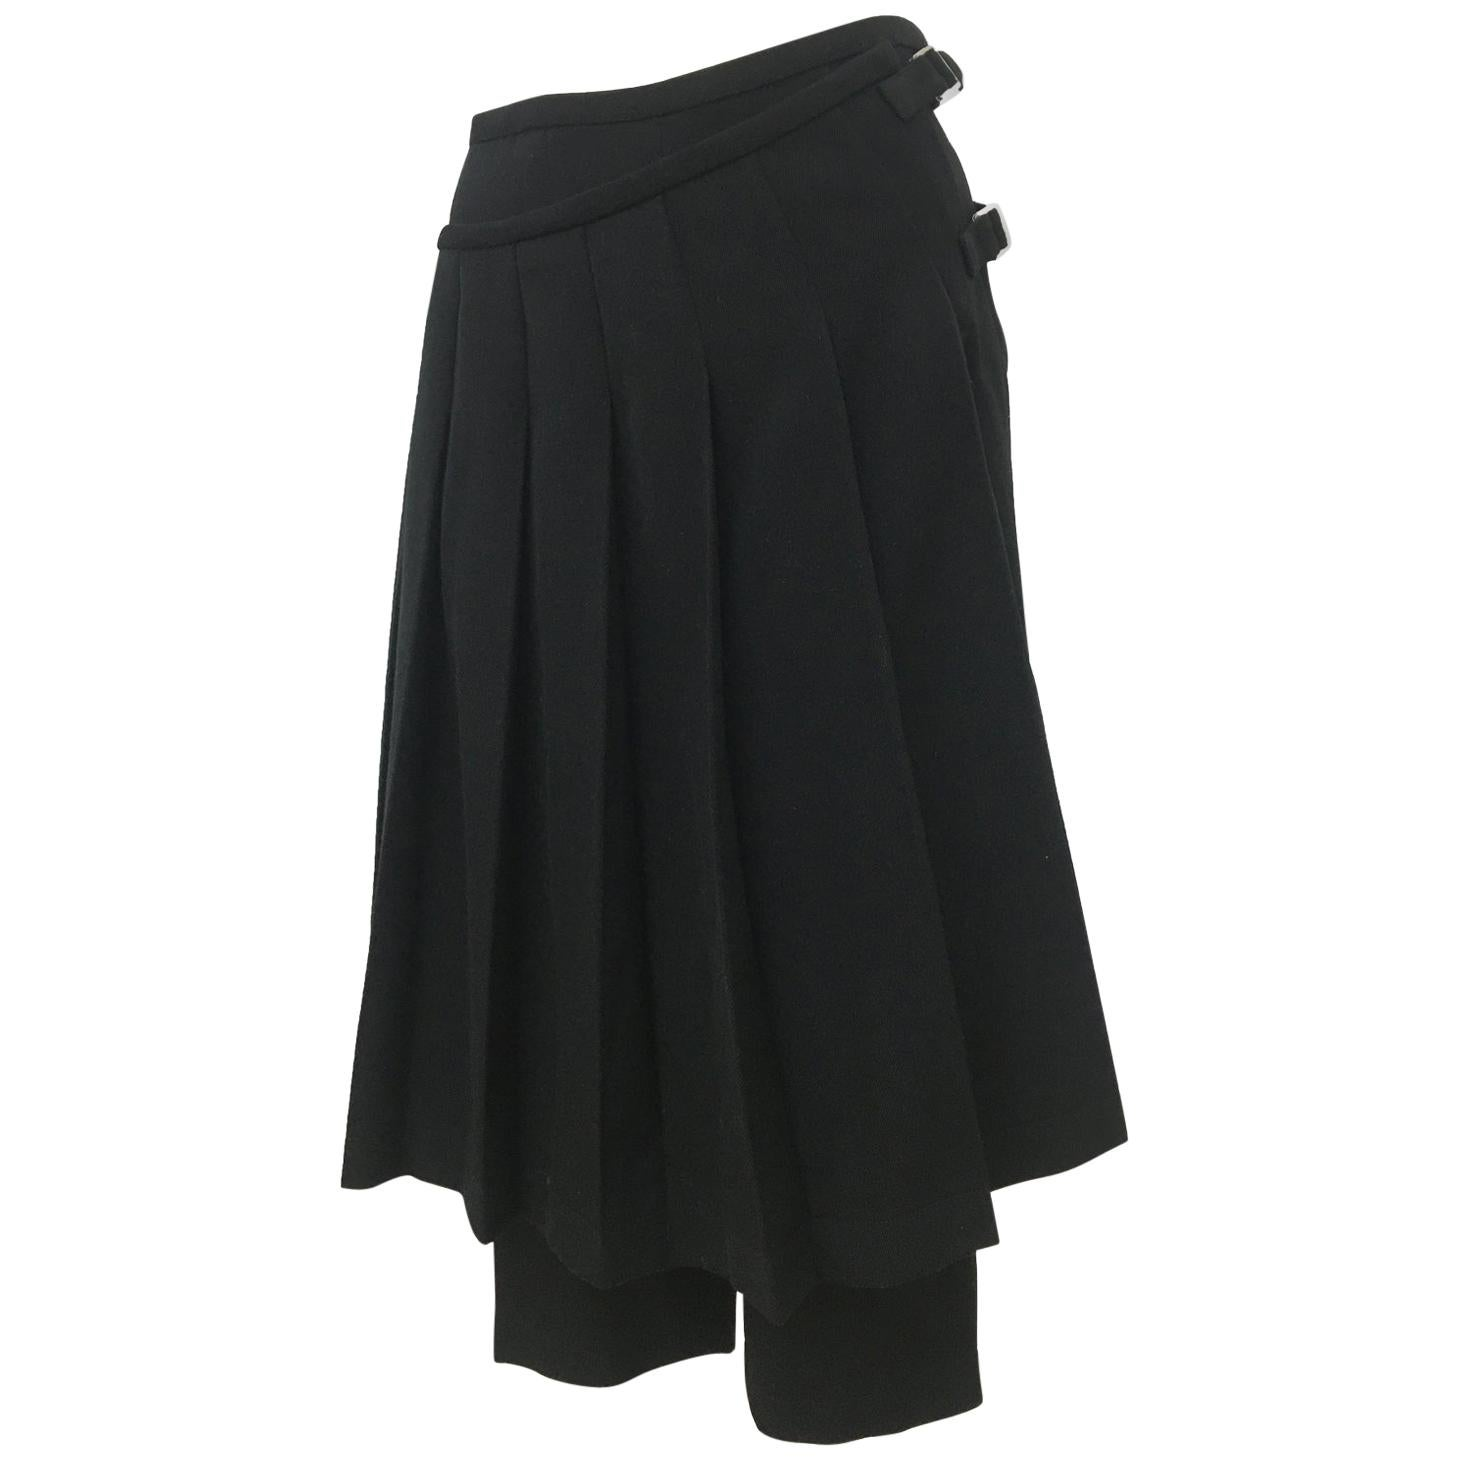 Comme des Garcons Pleated Skirt Pants Black Wool AD 1998